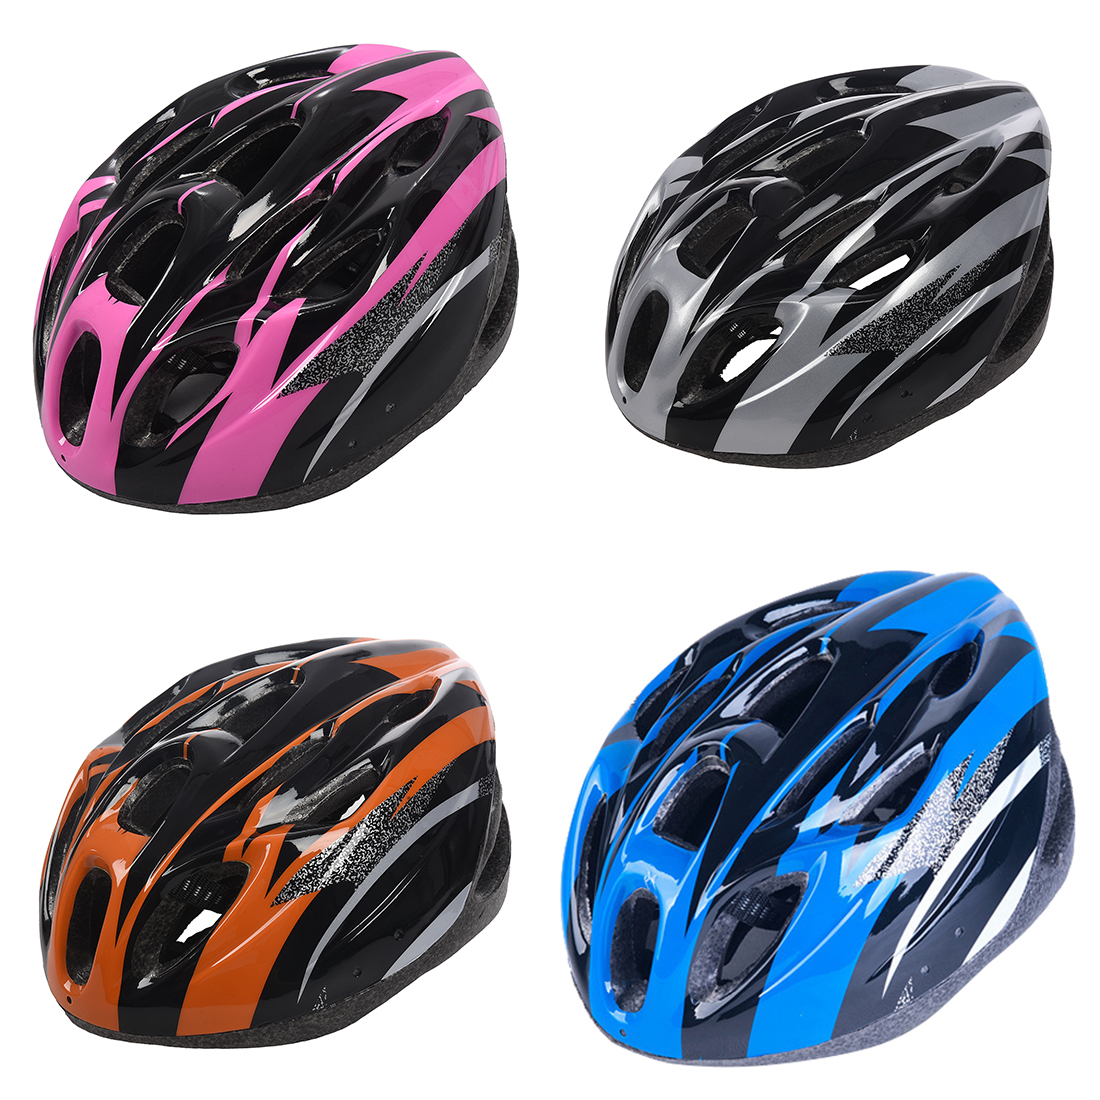 1x Separate Helmet Bike Helmet Riding Helmet X3b7 Ebay